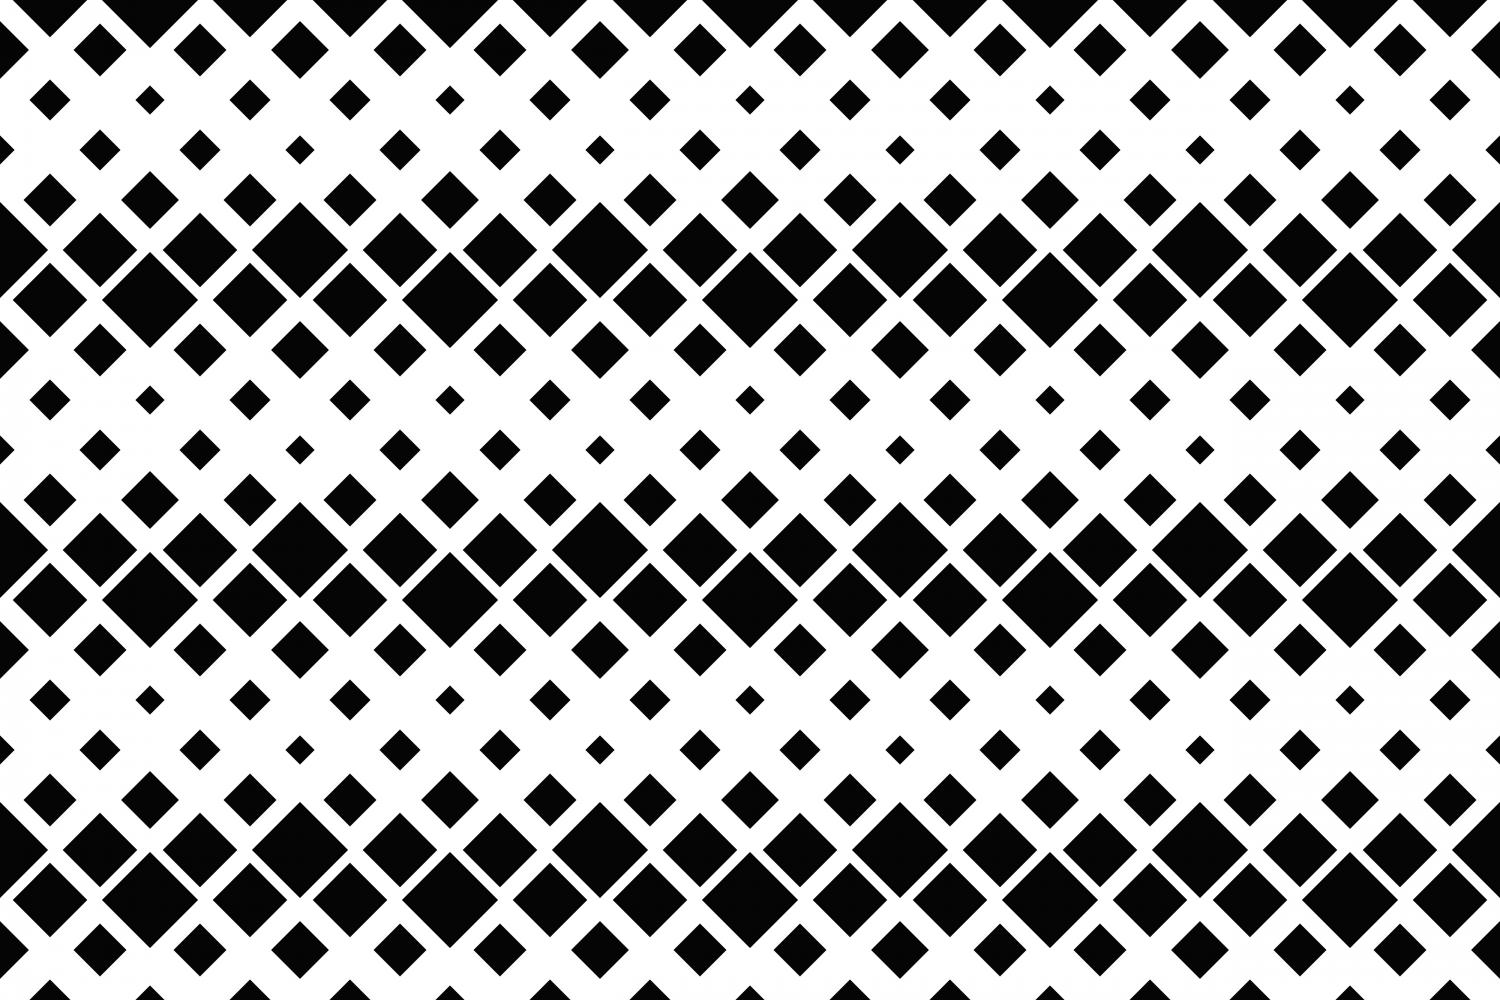 24 Seamless Square Patterns example image 2